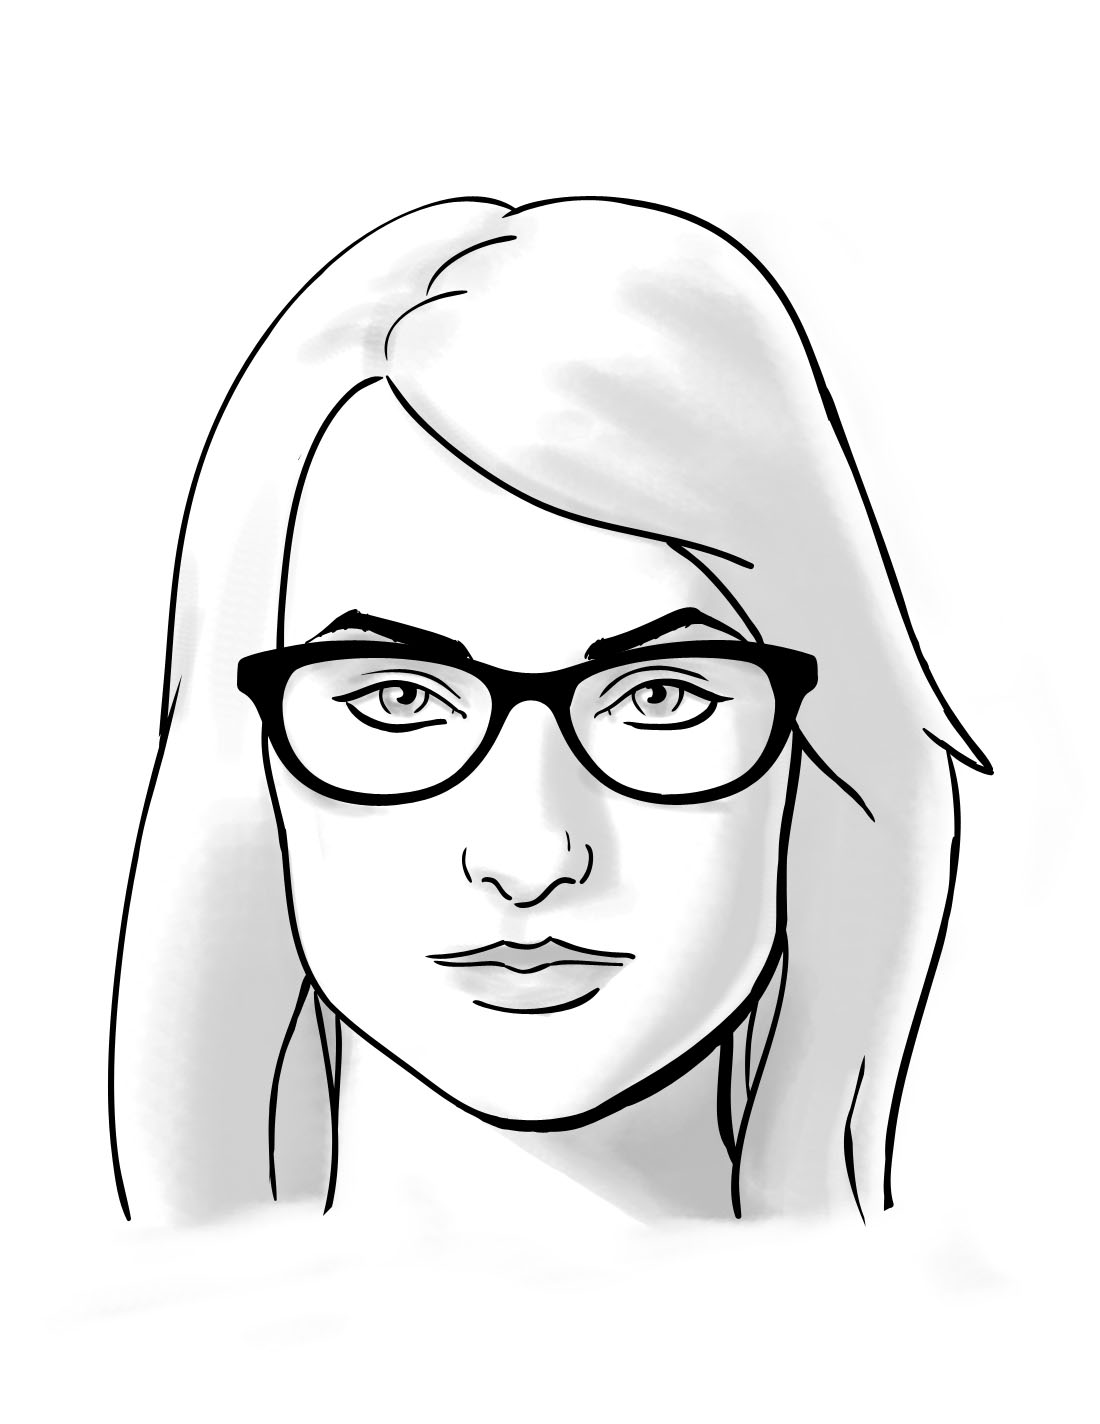 1100x1424 How To Choosing Glasses For Square Face Shapes